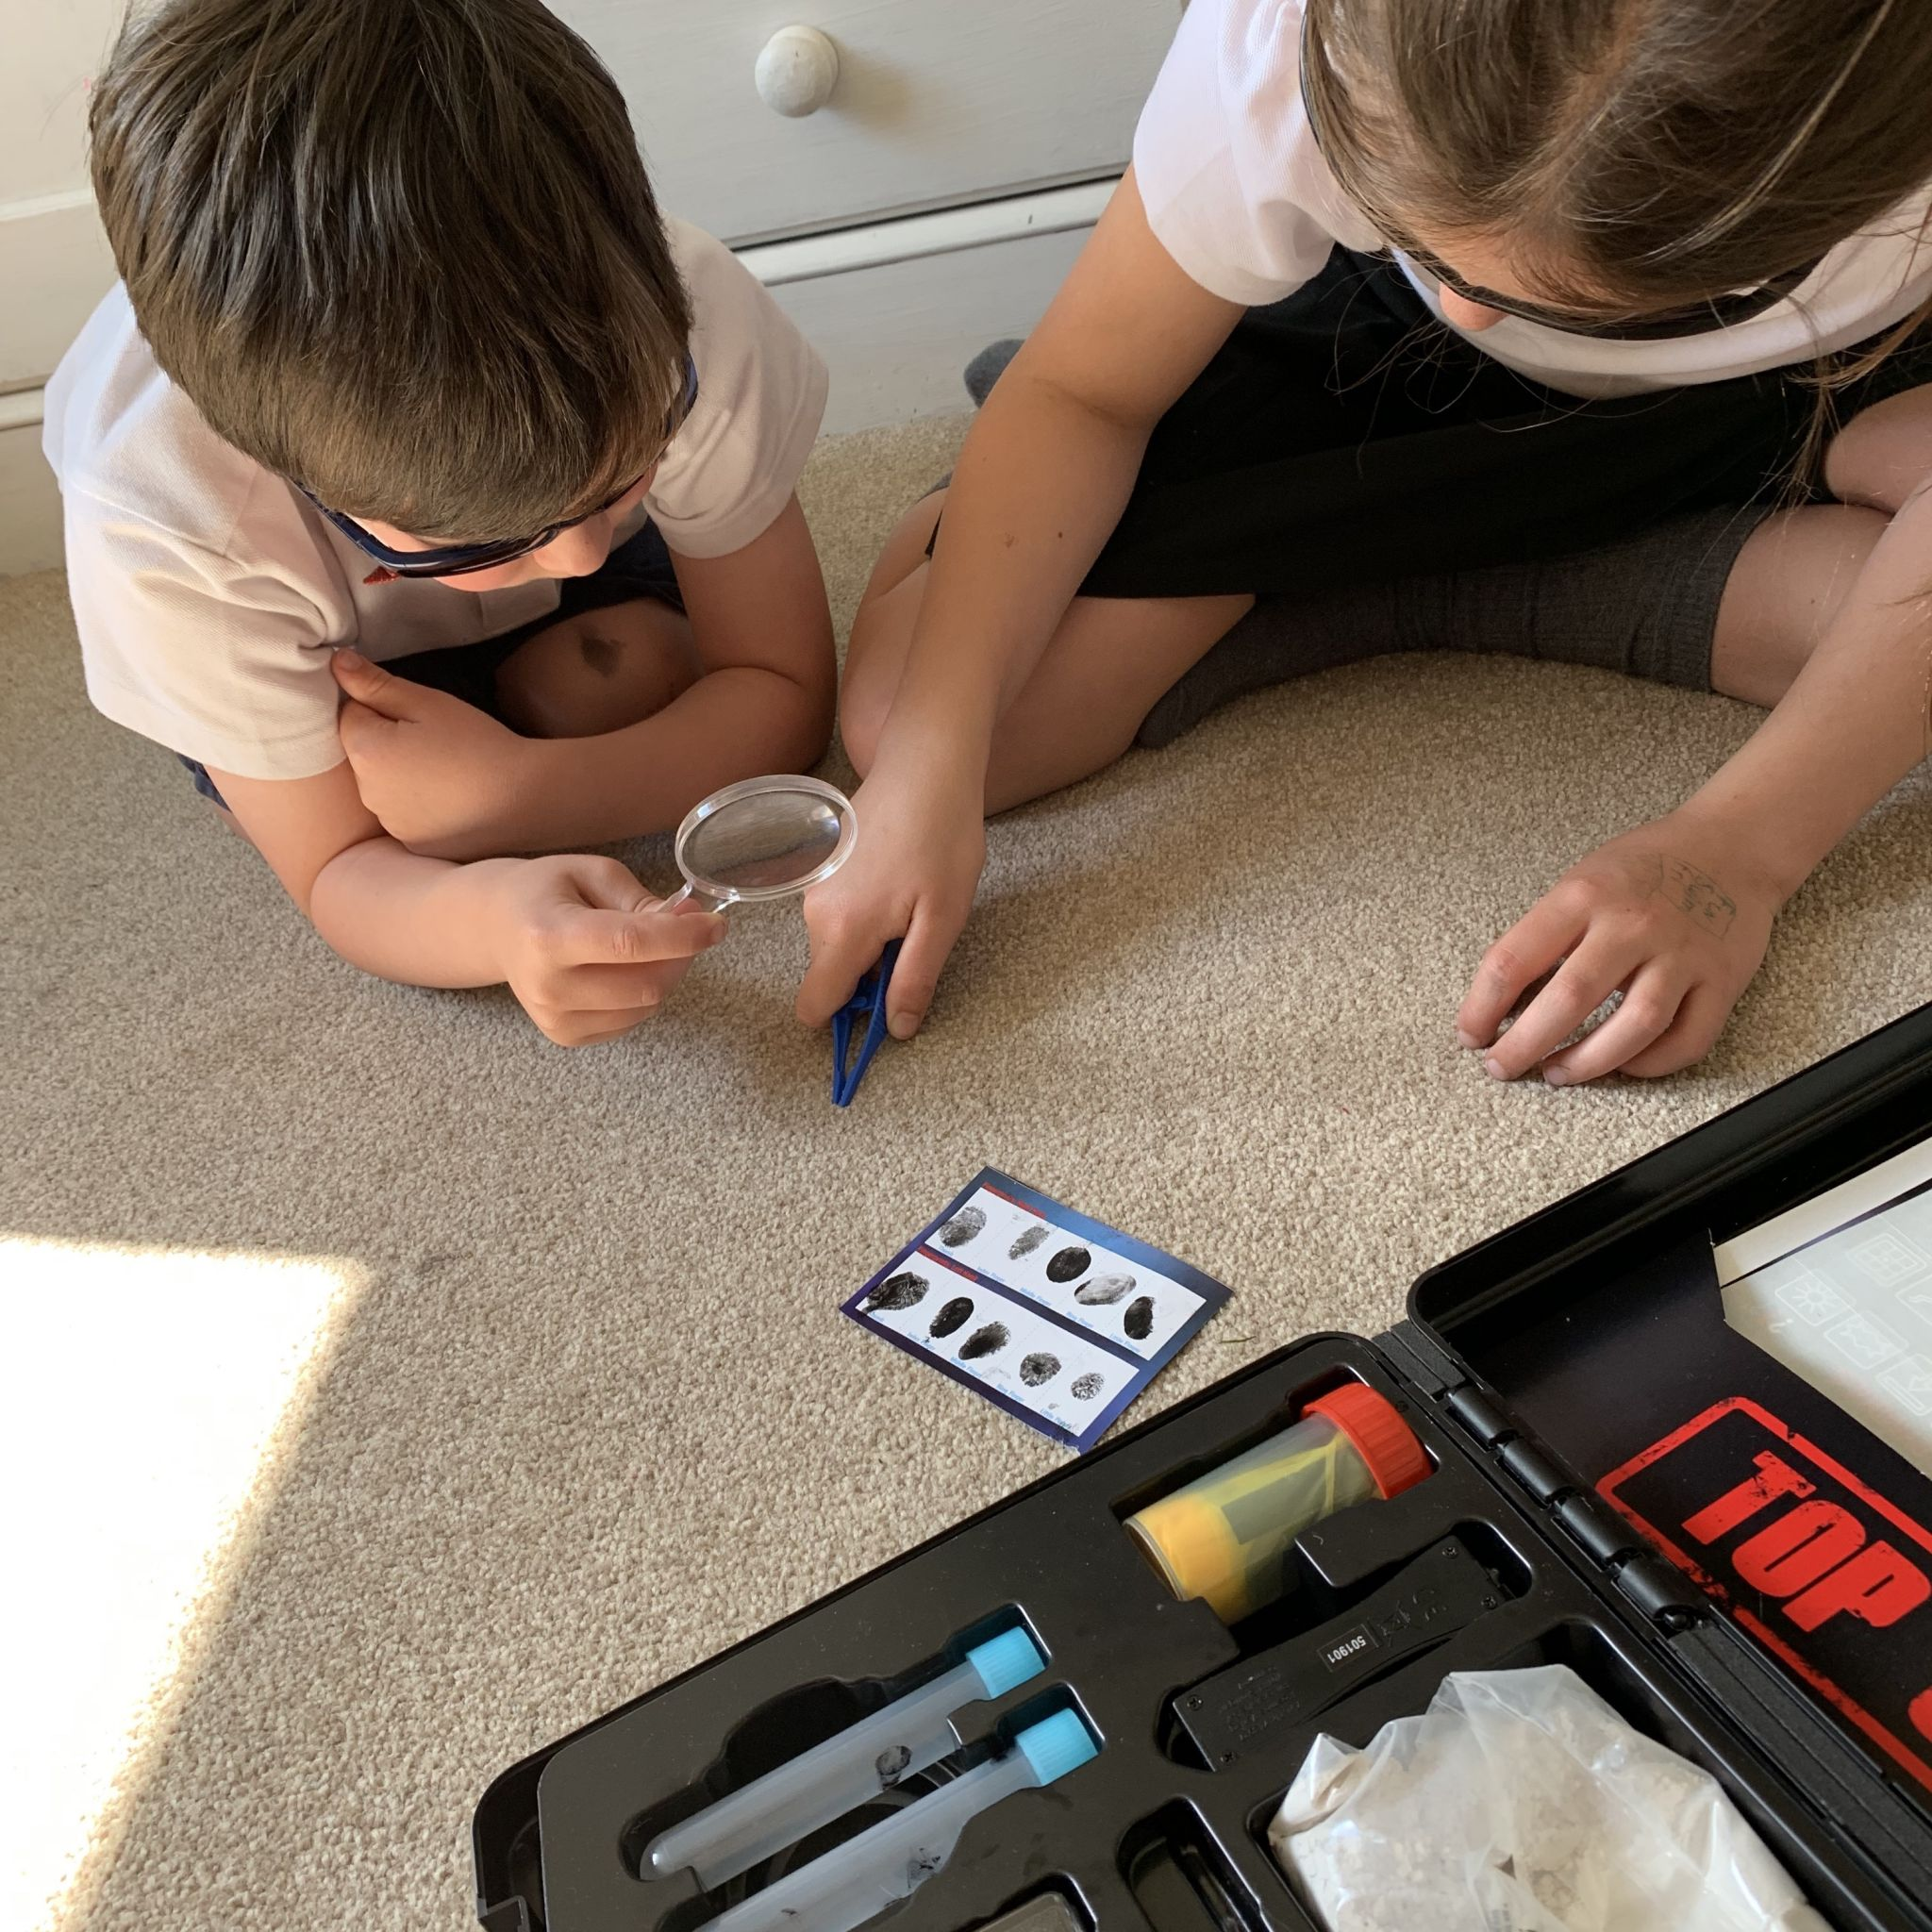 children playing with a spy case